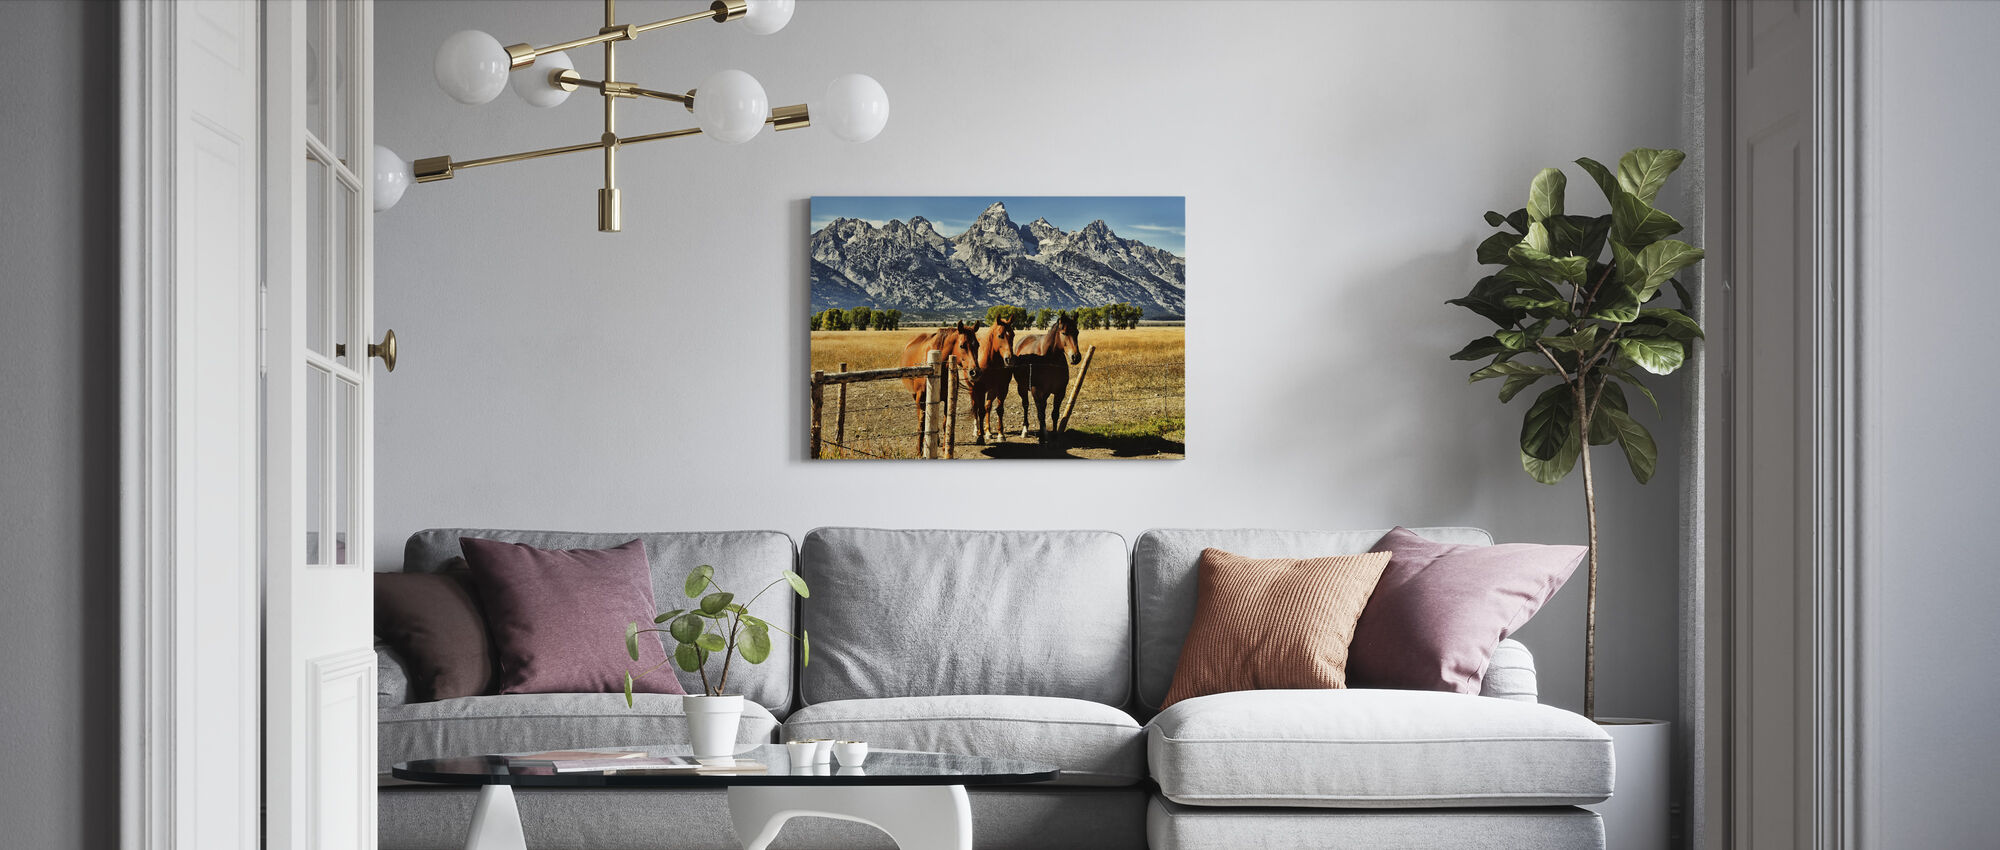 Trio in front of Teton Mountain Range - Canvas print - Living Room